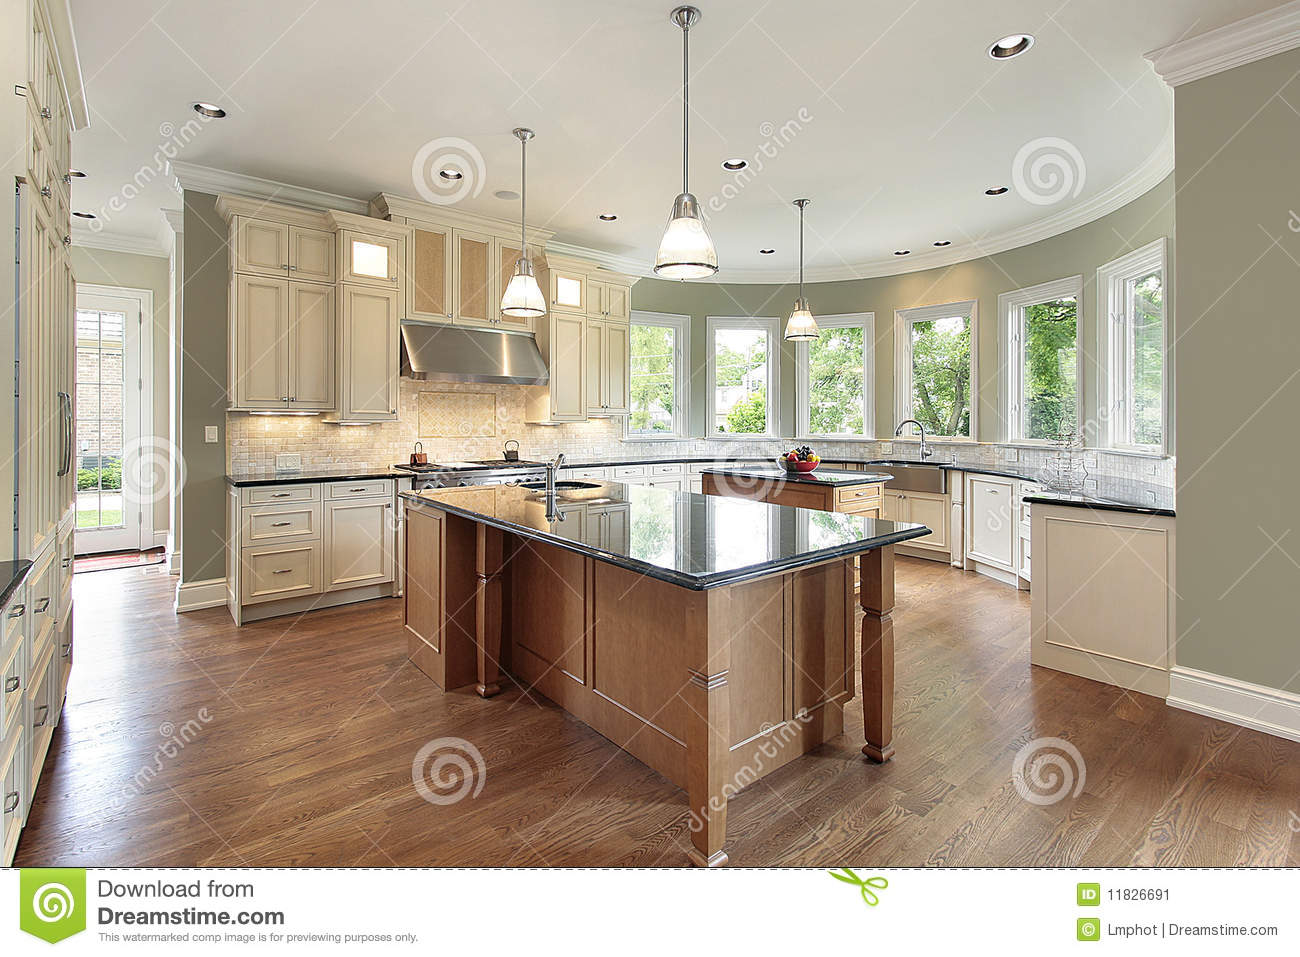 Kitchen With Curved Walls Stock Image Image Of Family